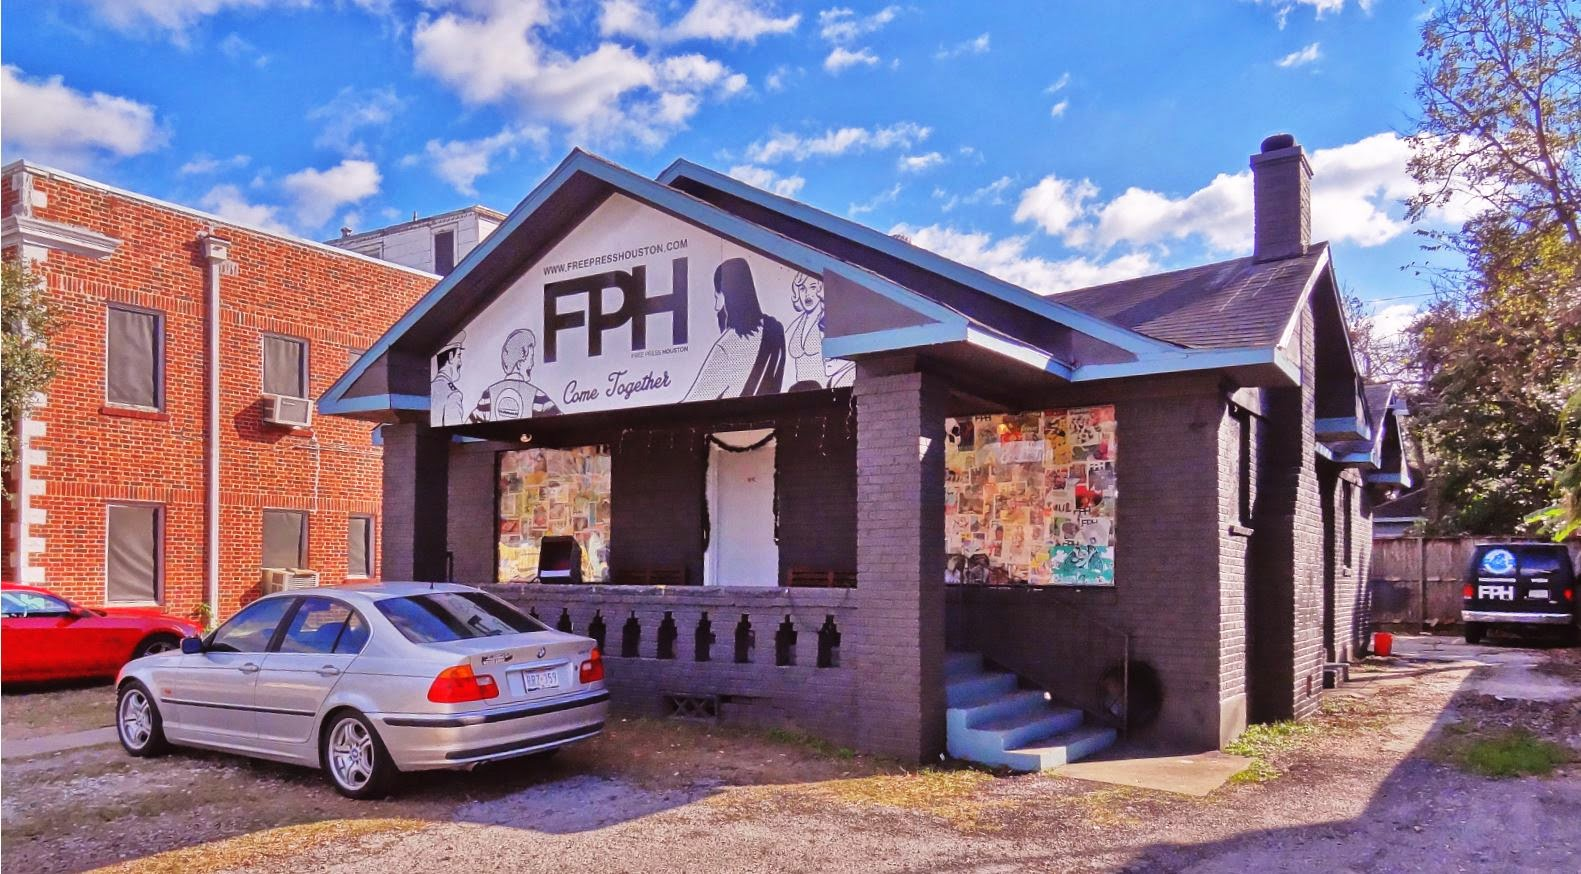 FPH - Free Press Houston - Office in bungalow on Lower Westheimer in Montrose 2014-12 street pic